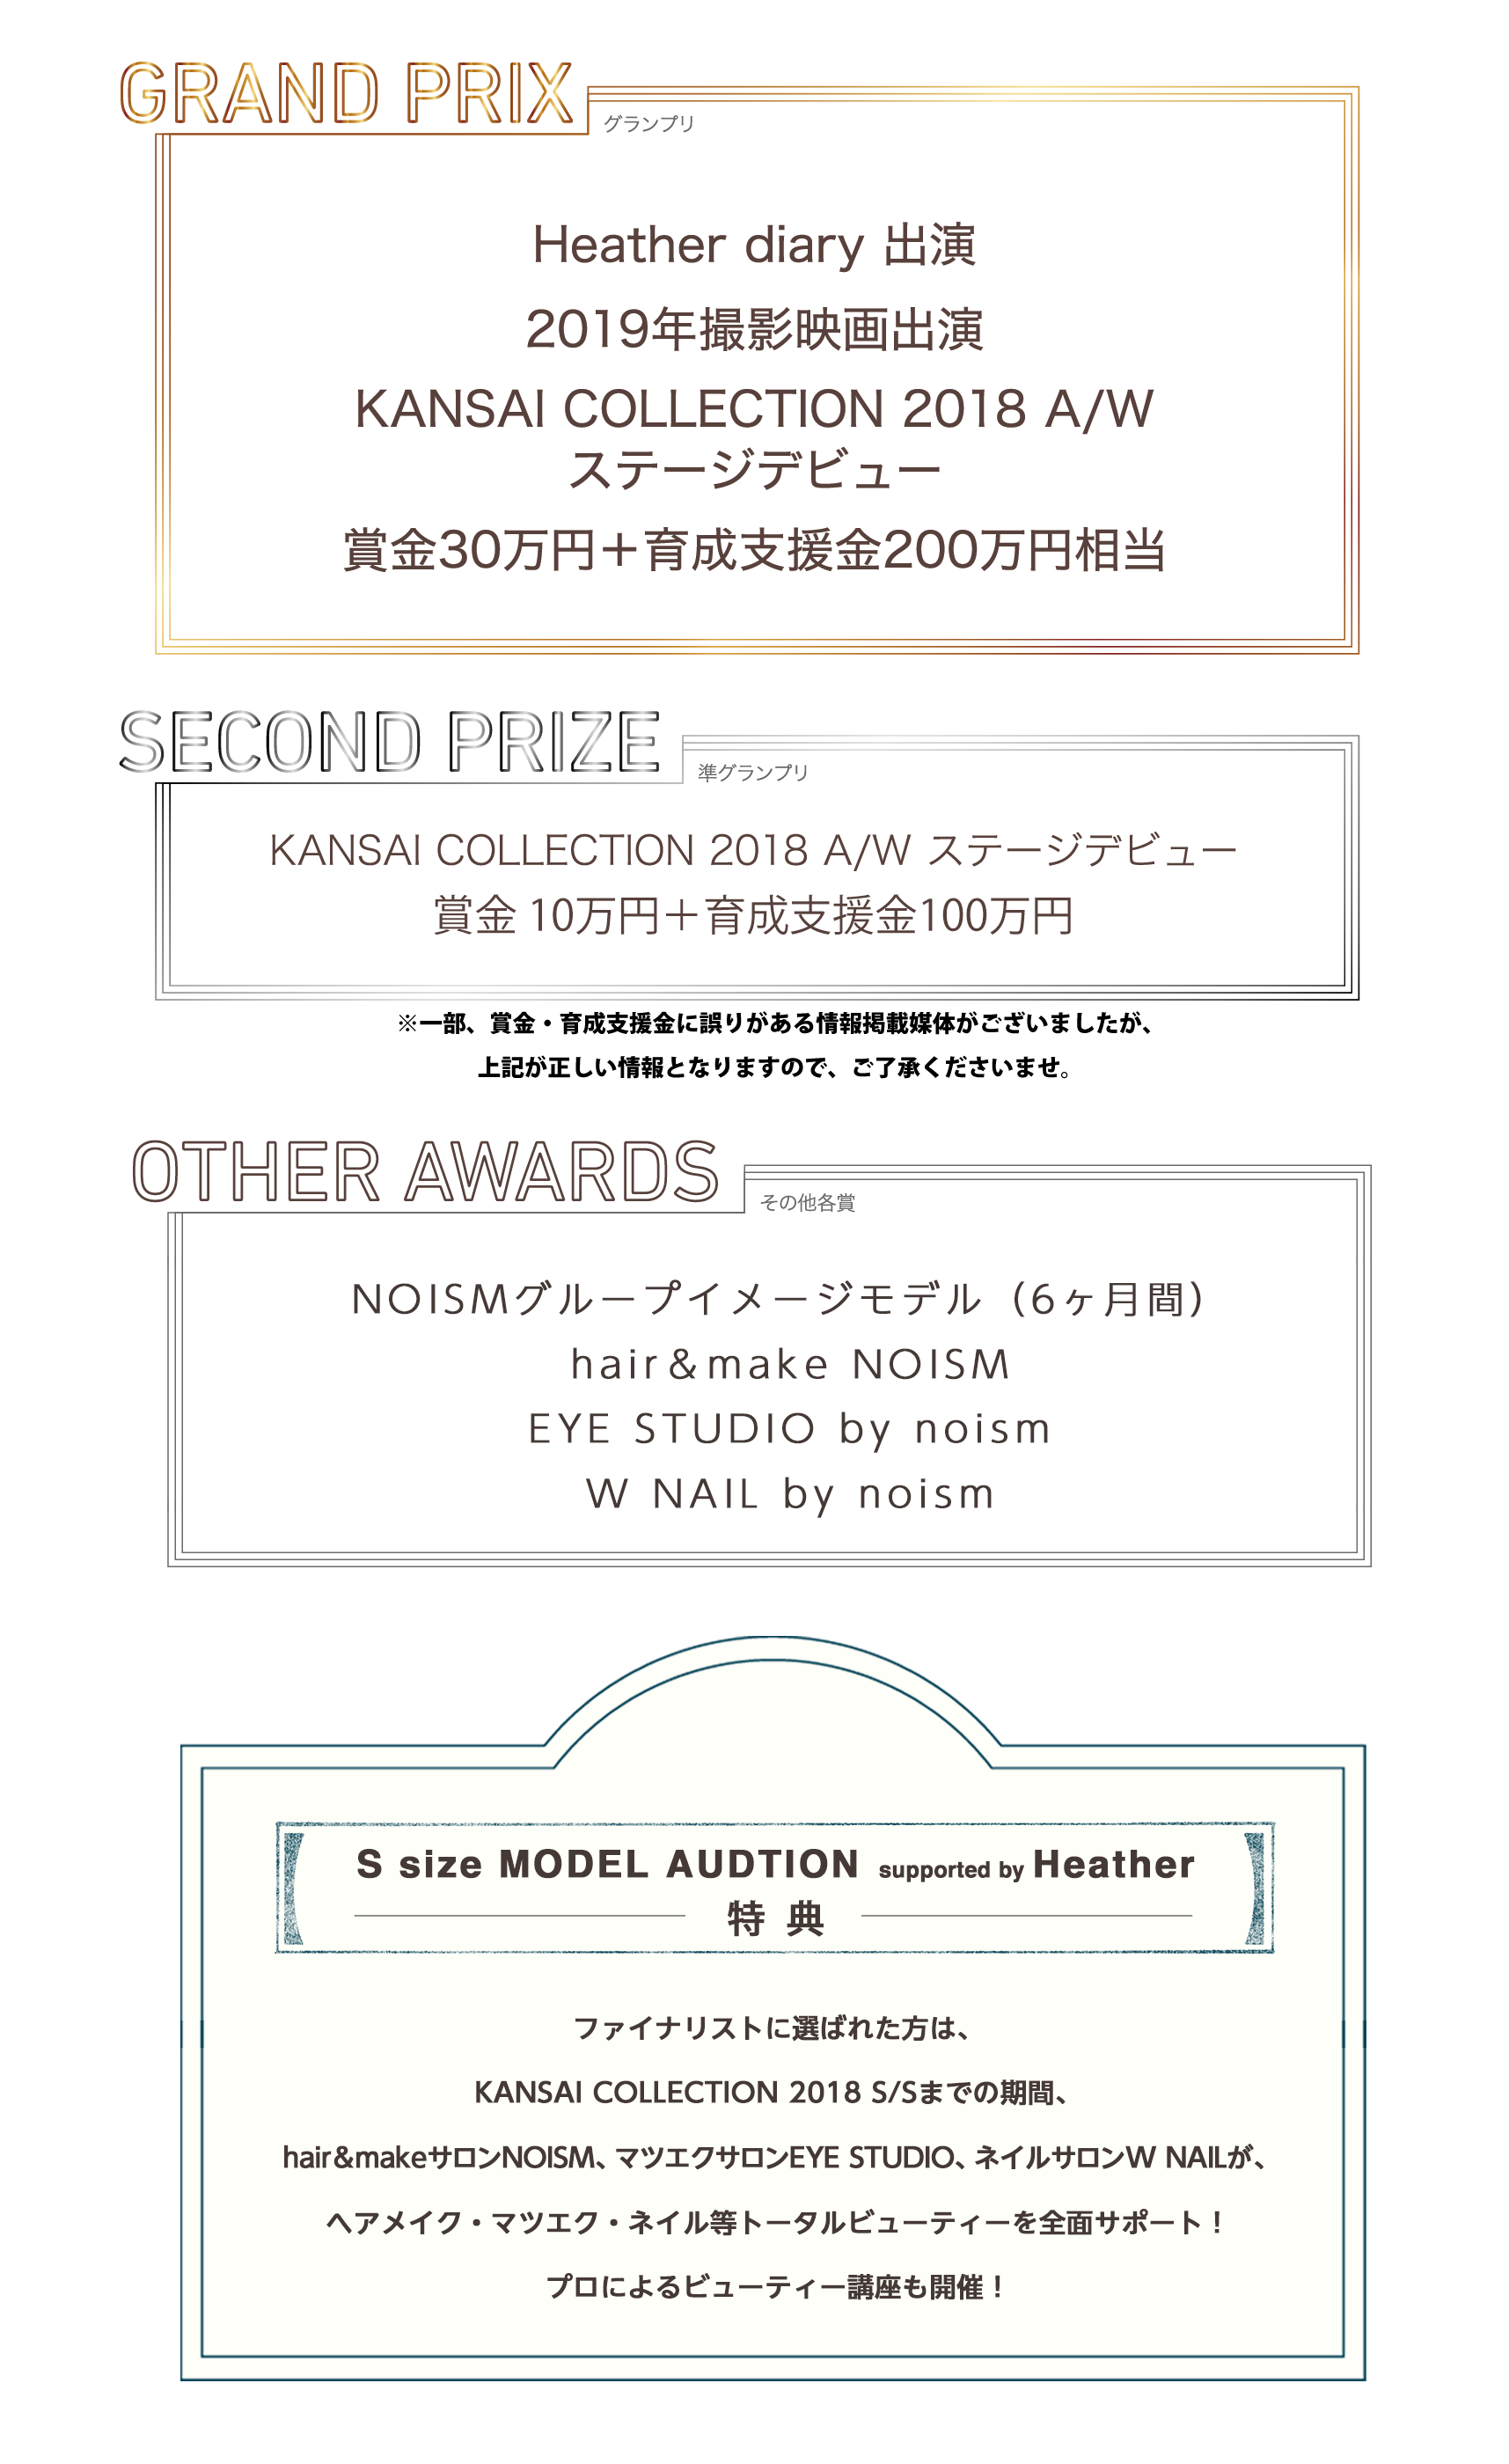 GRAND PRIXHeather diary出演2019年撮影映画出演KANSAI COLLECTION 2018 A/Wステージデビュー賞金30万円+育成支援金200万円相当SECOND PRIZEKANSAI COLLECTION 2018 A/W ステージデビュー賞金10万円+育成支援金100万円OTHER AWARDSNOISMグループイメージモデル(6ヶ月間)hair&make NOISMEYE STUDIO by noismW NAIL by noismS size MODEL AUDTION supported by Heather特典ファイナリストに選ばれた方は、KANSAI COLLECTION 2018 S/Sまでの期間、hair&make NOISM、EYE STUDIO by noism、W NAIL by noismがヘアメイク・マツエク・ネイル等トータルビューティーを全面サポート!プロによるビューティー講座も開催!